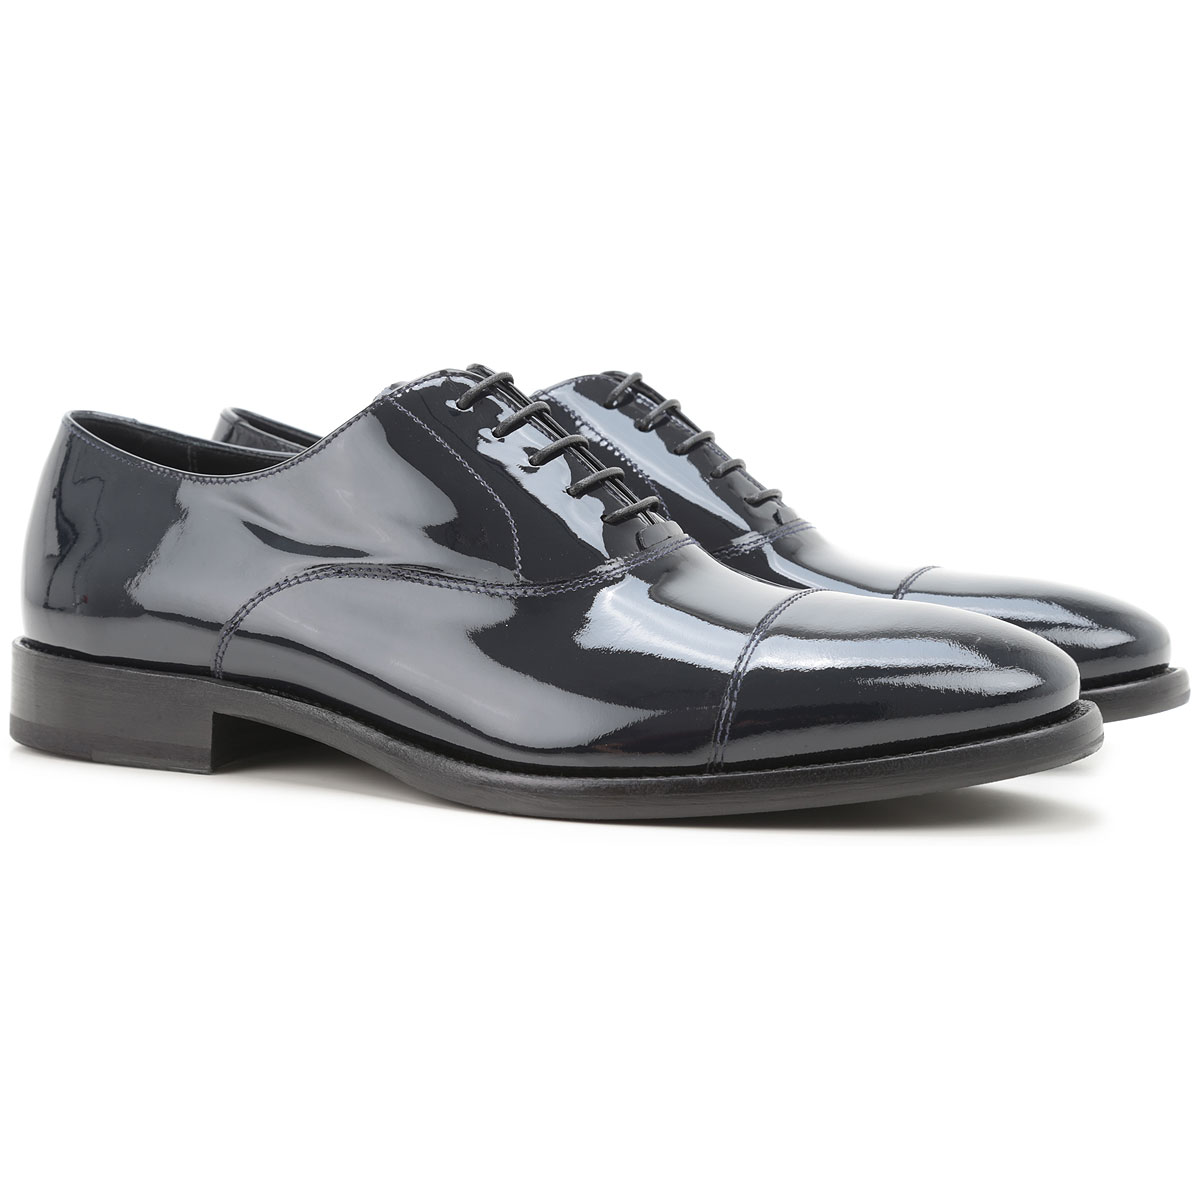 Armani men shoes 004